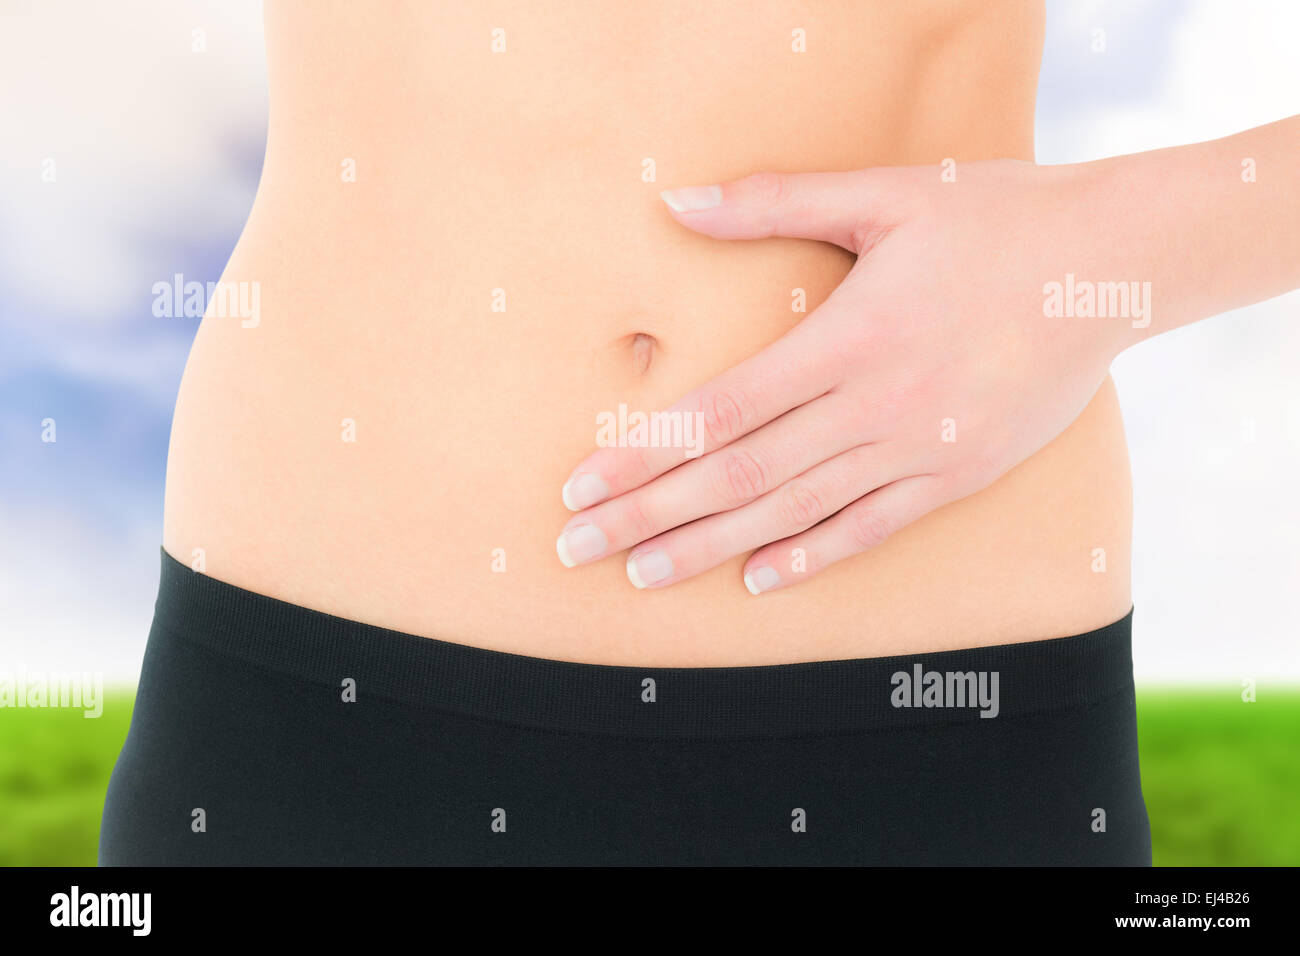 Composite image of closeup mid section of a fit woman with stomach pain - Stock Image